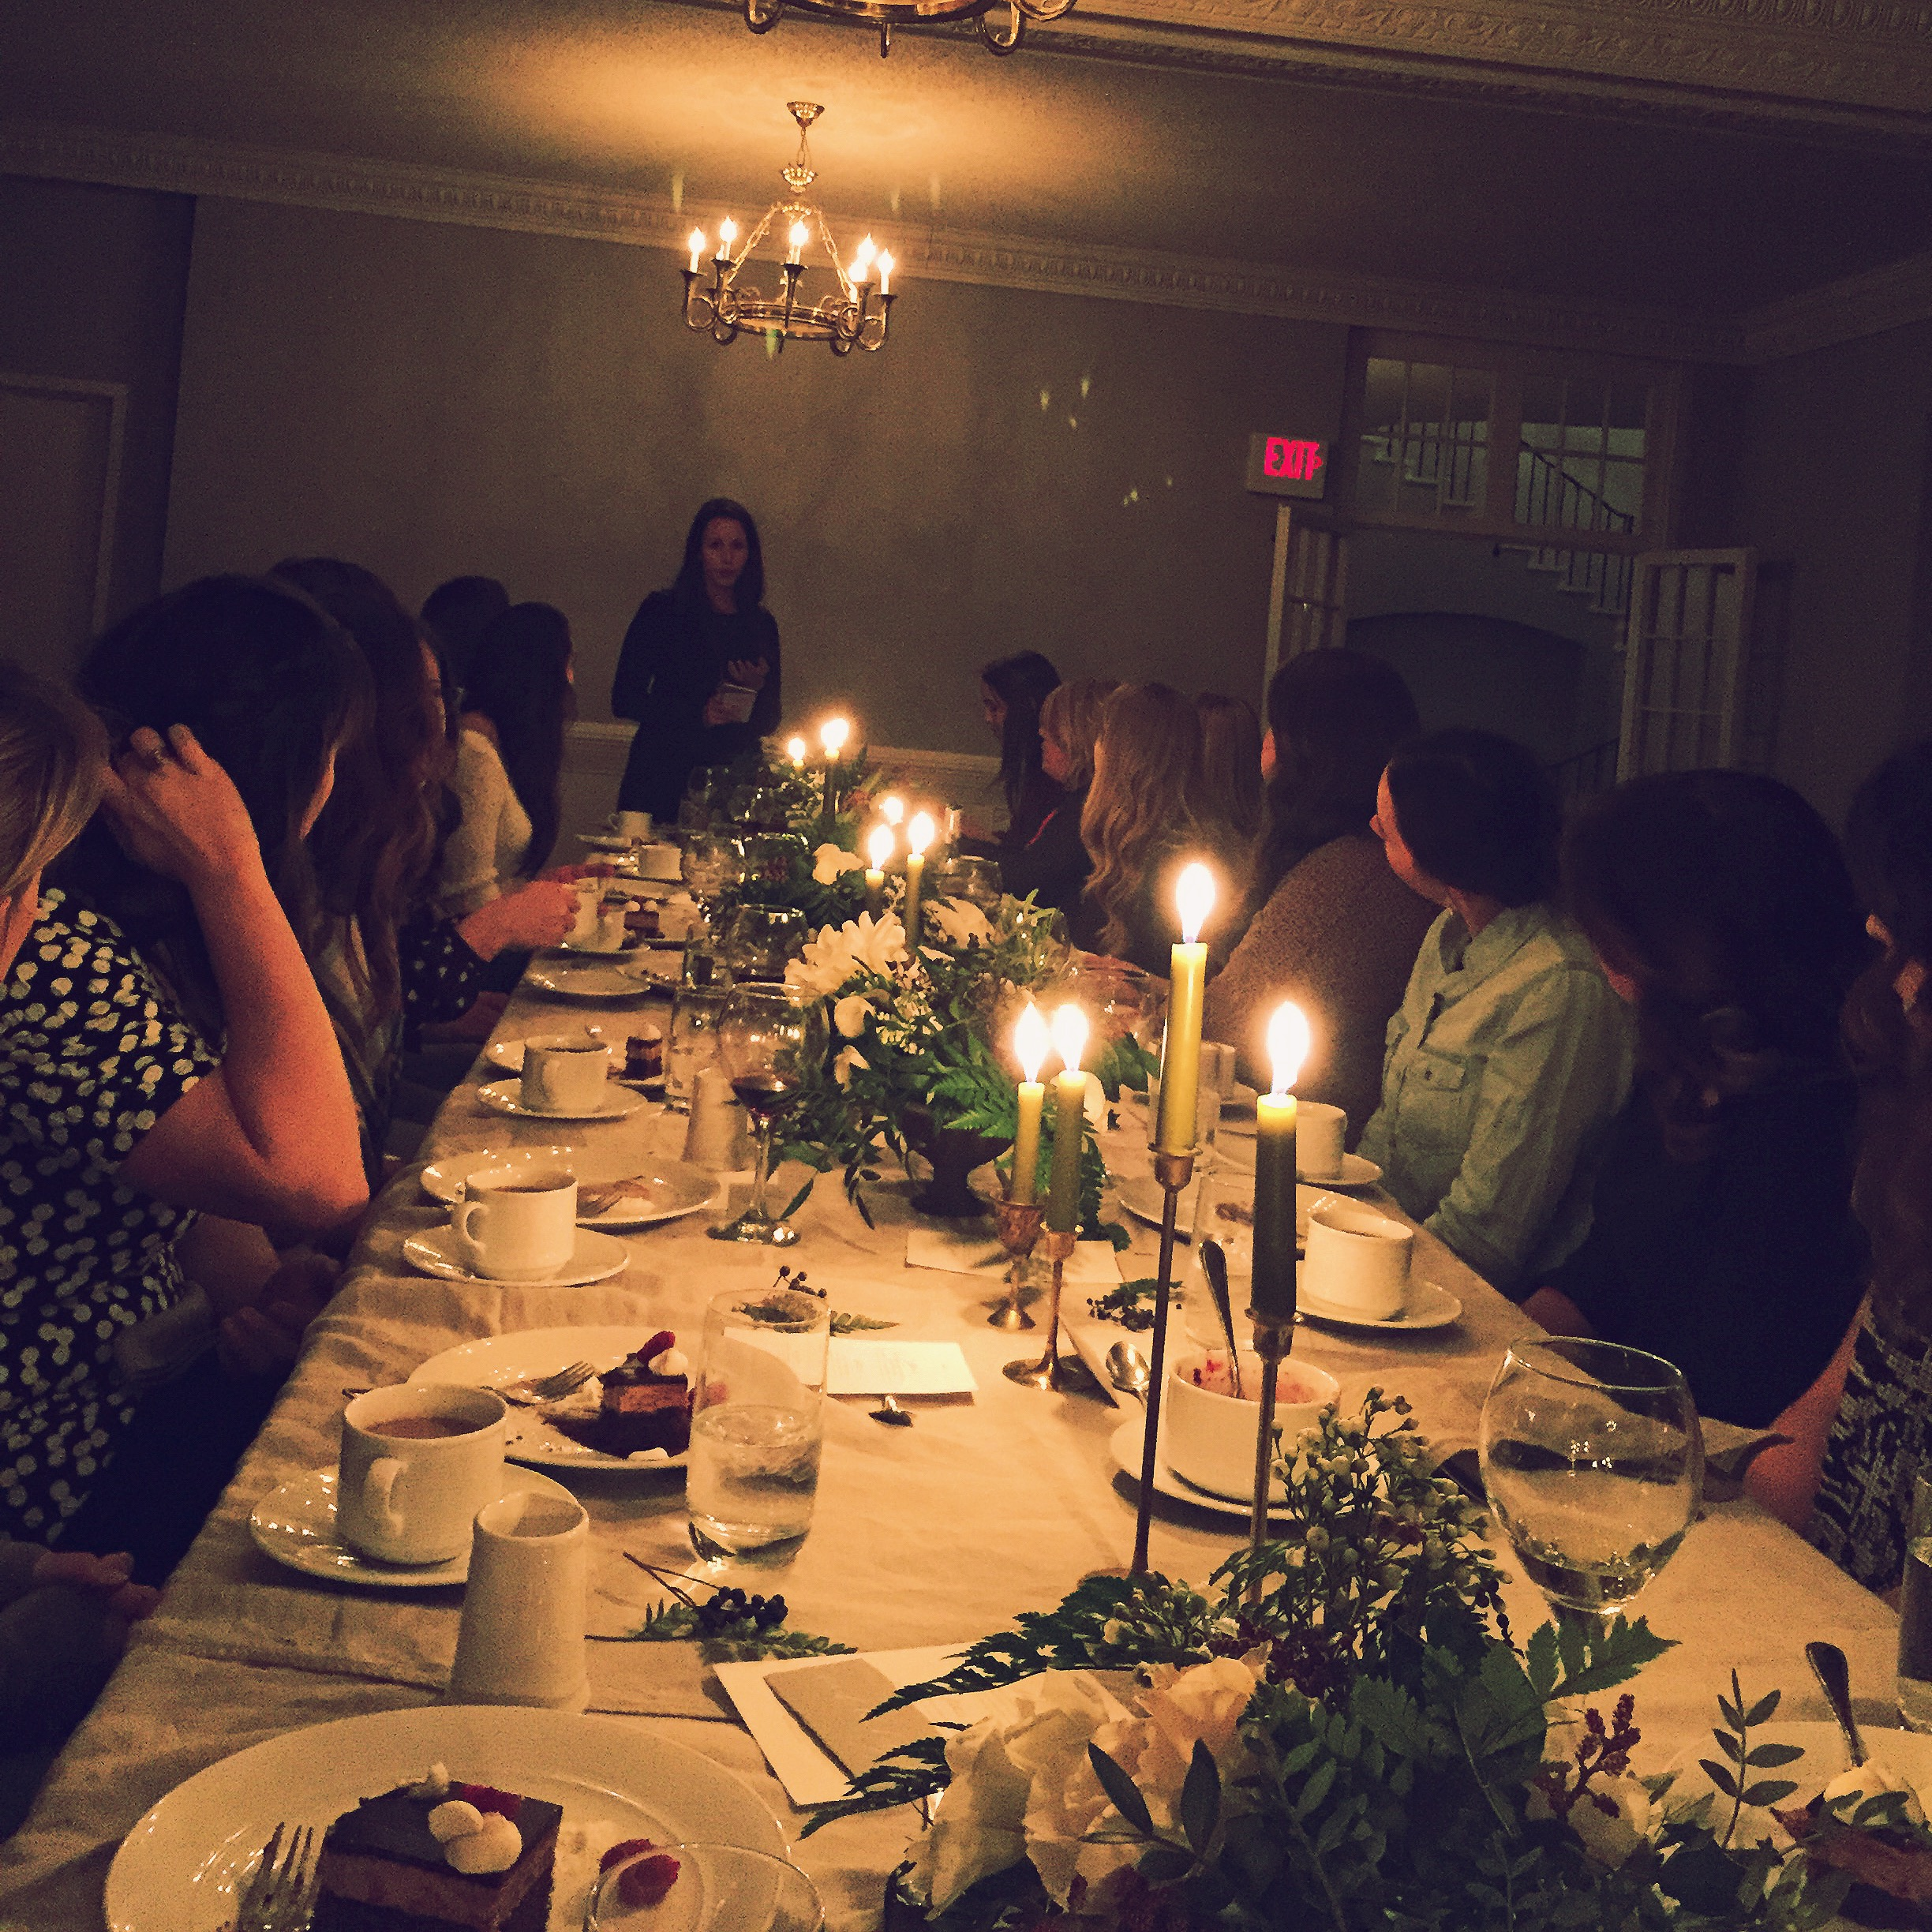 The lovely Shanna addressing our group at the welcome dinner